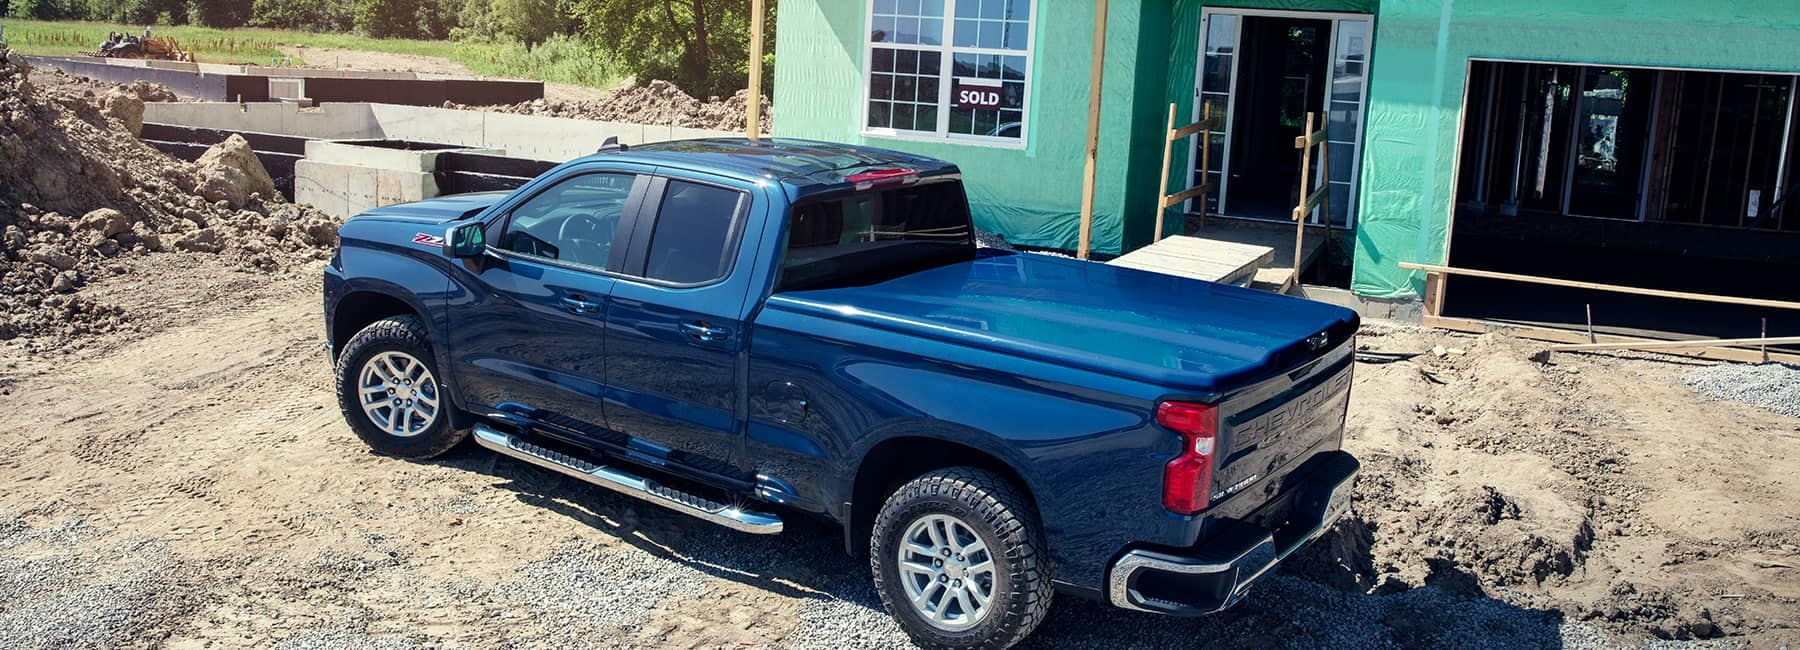 Blue 2021 Chevrolet Silverado 1500LD at a Construction Site